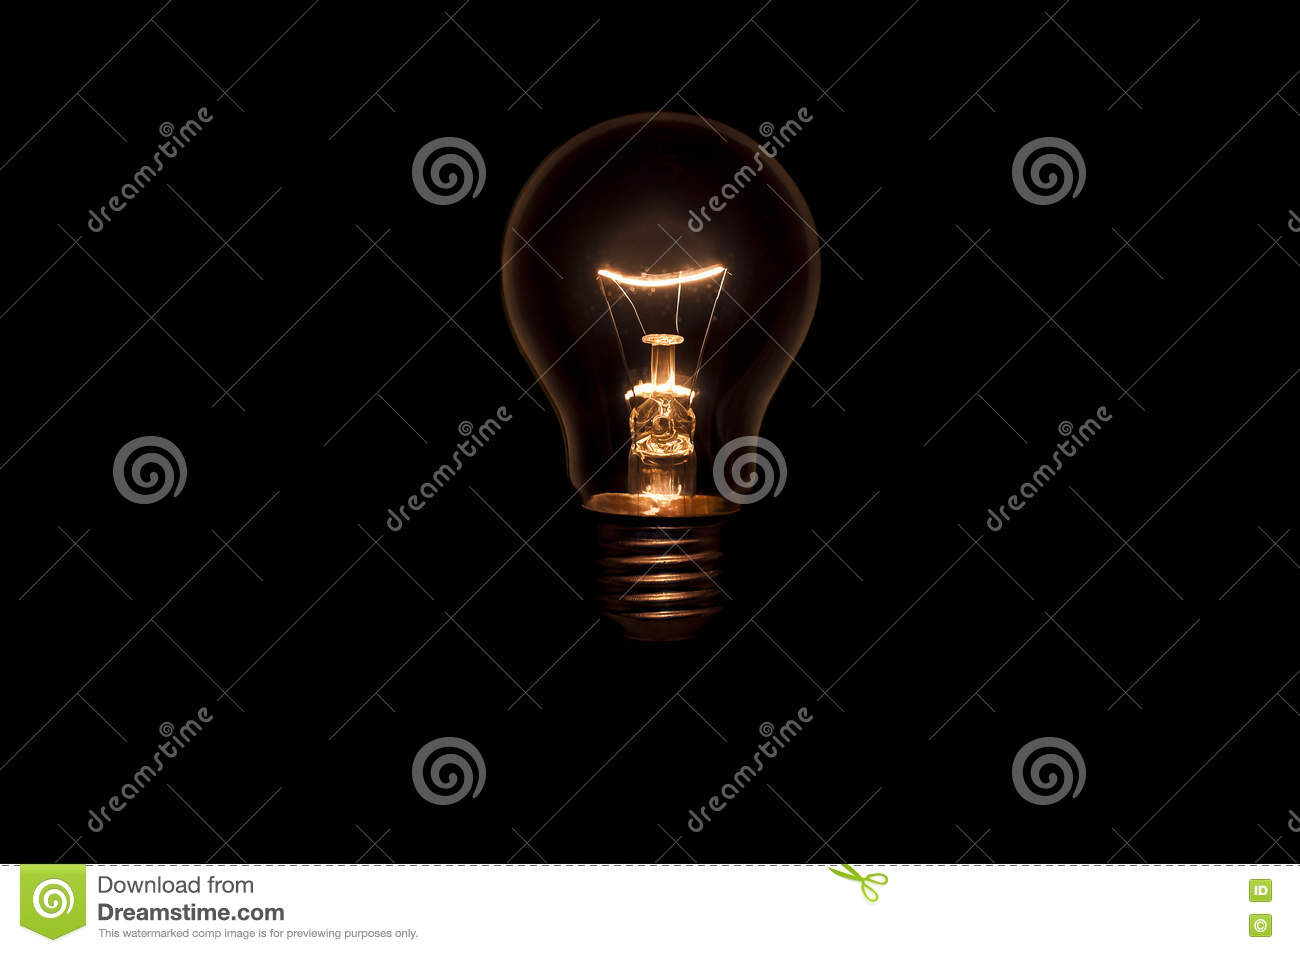 Tungsten Light Bulb On Black Background Stock Photo Image Of Wiring A Outlet From Fixture Without And Socket Concept For Creative Idea